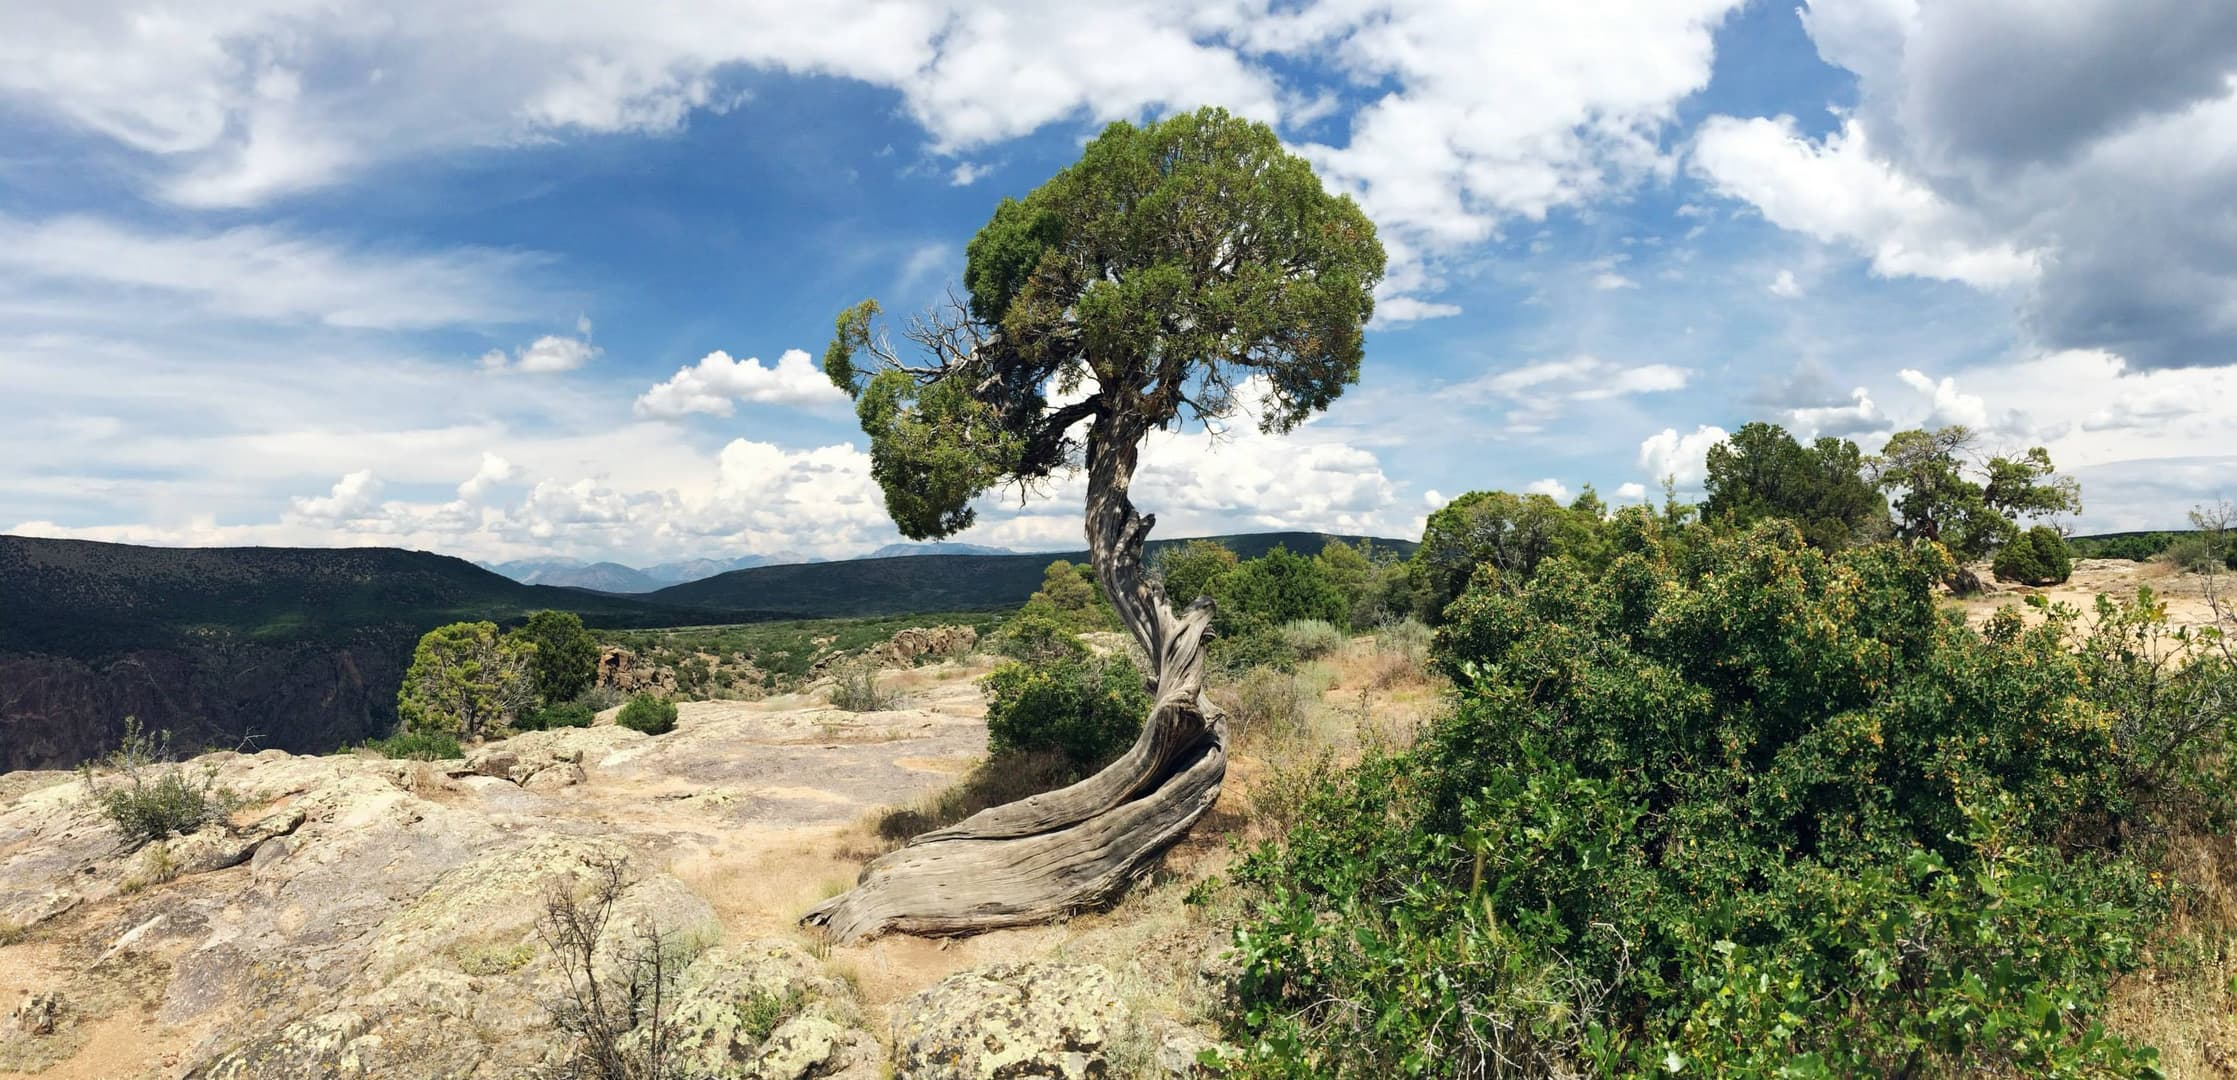 A lone juniper tree growing on the rim of the Black Canyon of the Gunnison. The tree's trunk has grown in a distinctive spiral, with all of its branches concentrated in a hemispherical crown.